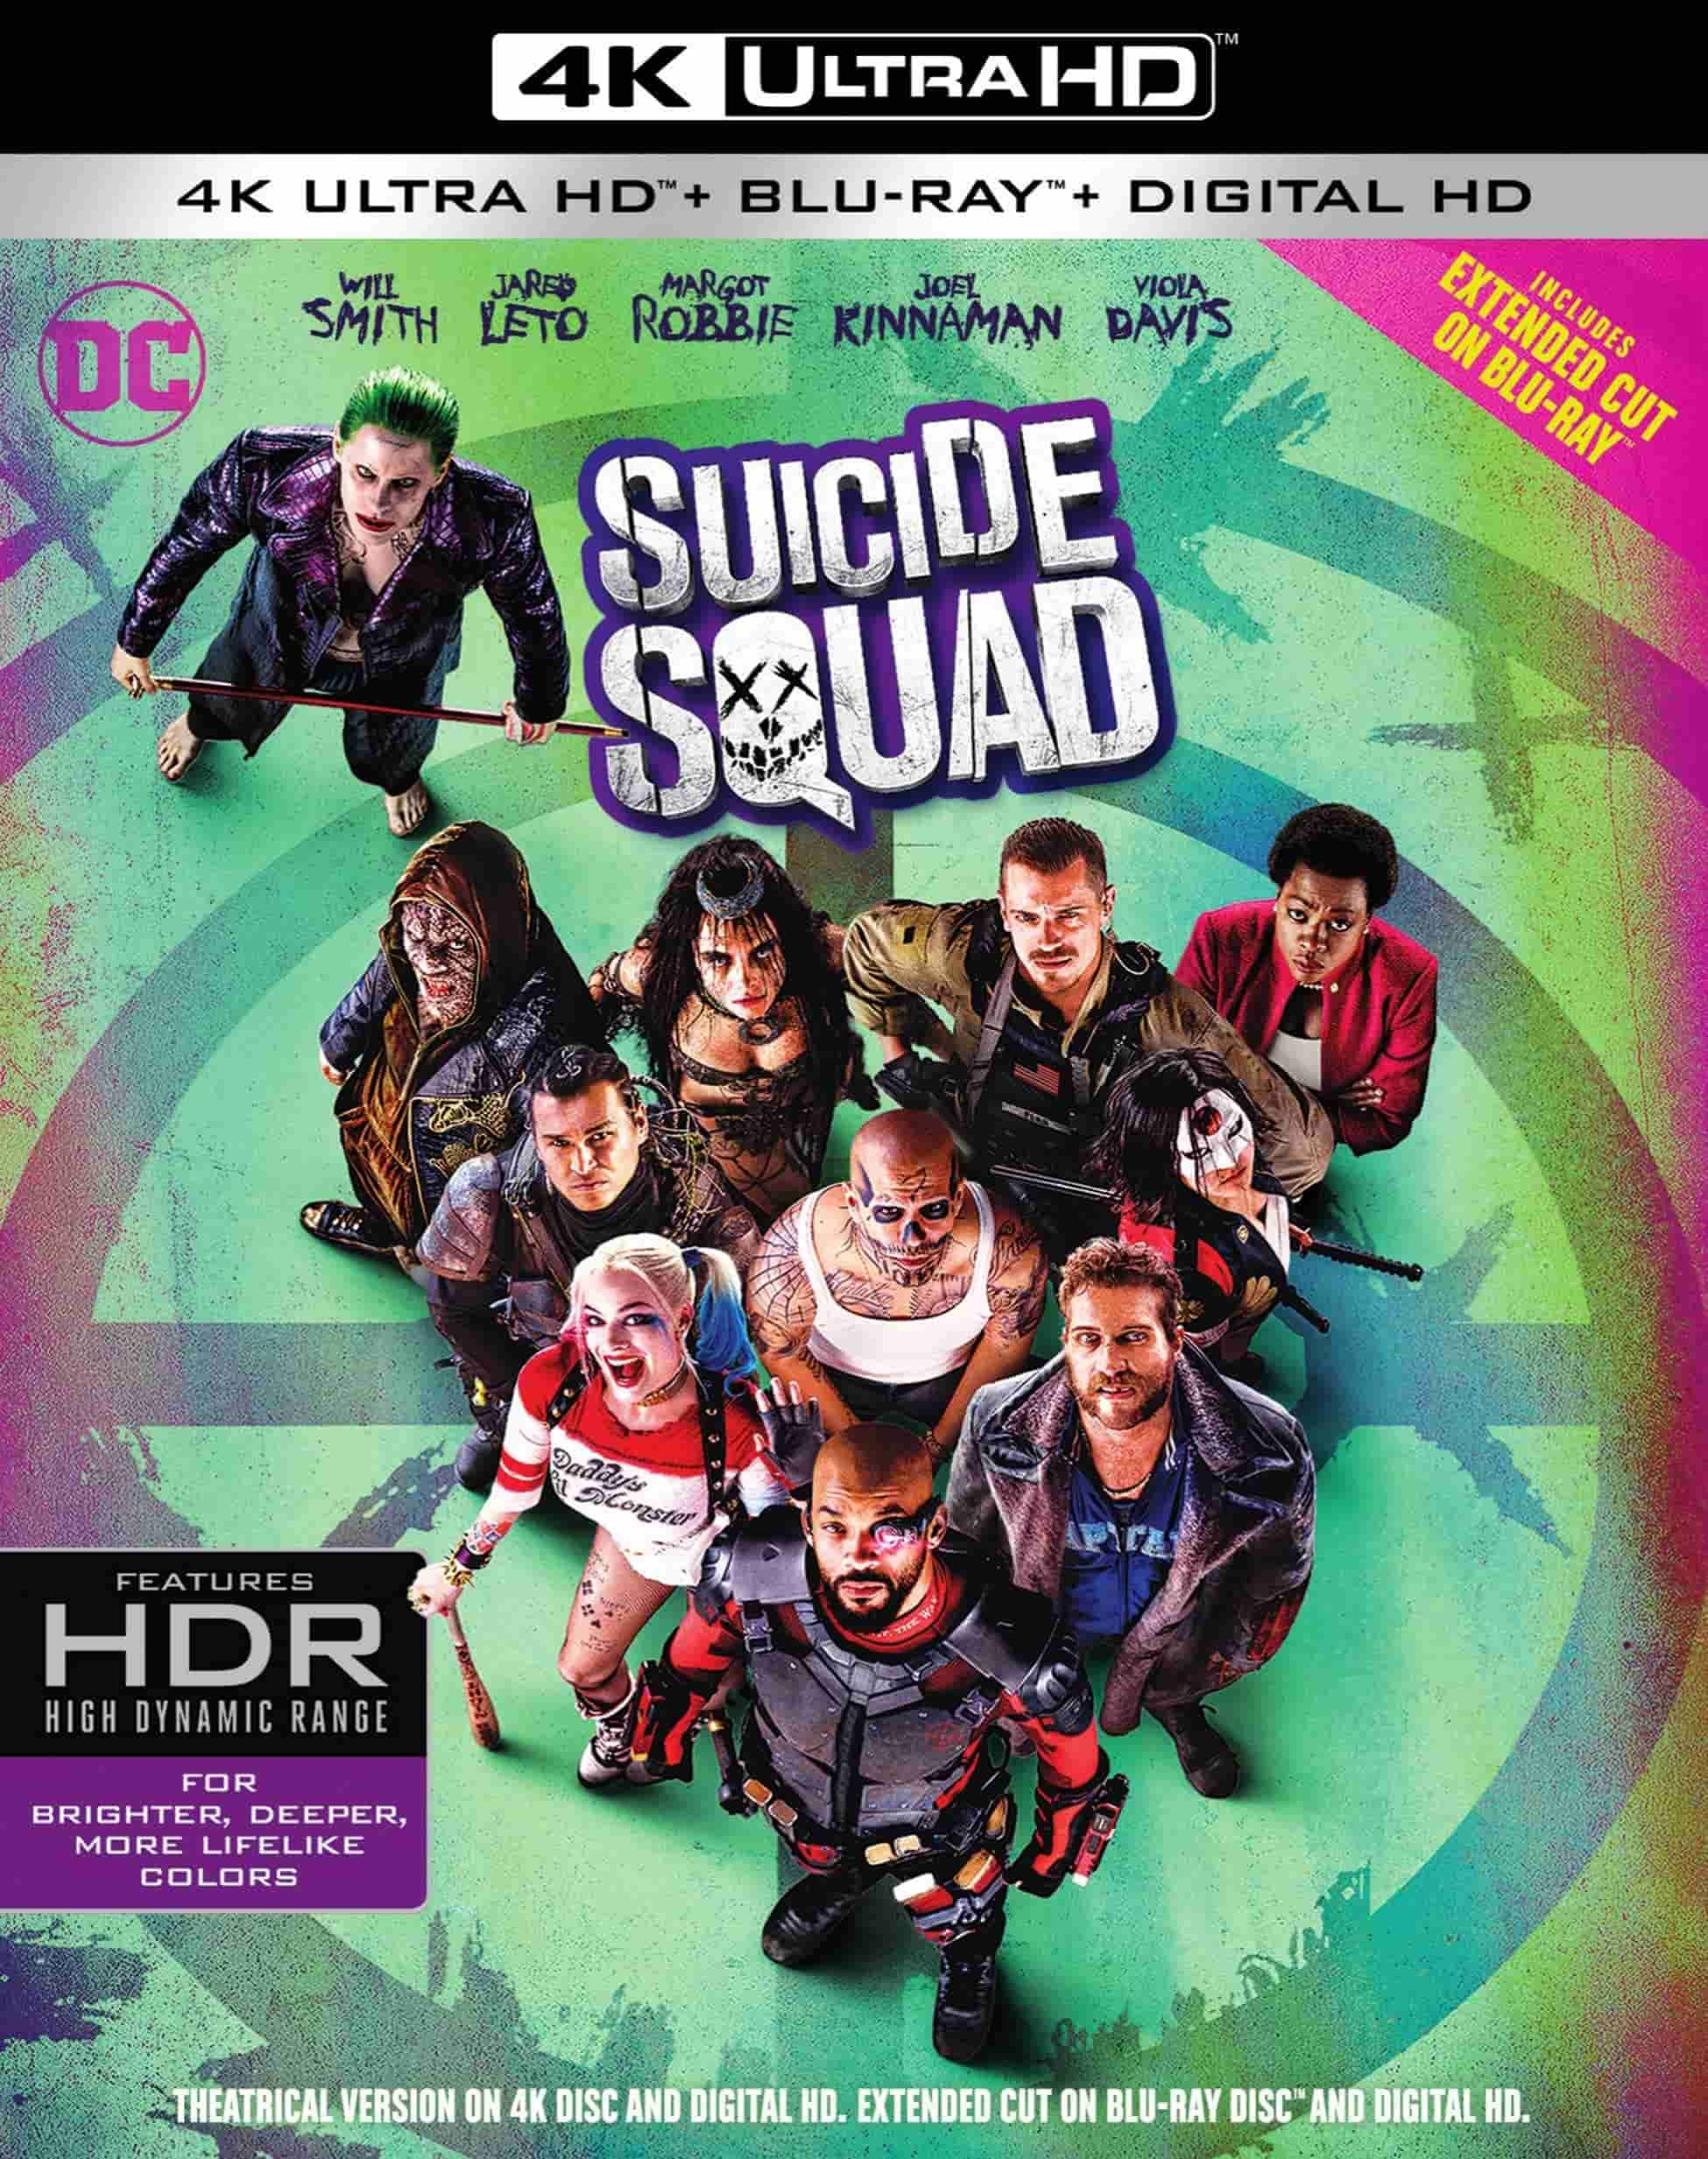 Suicide Squad 2016 BluRay REMUX 4k Ultra HD » Download Movies 4K